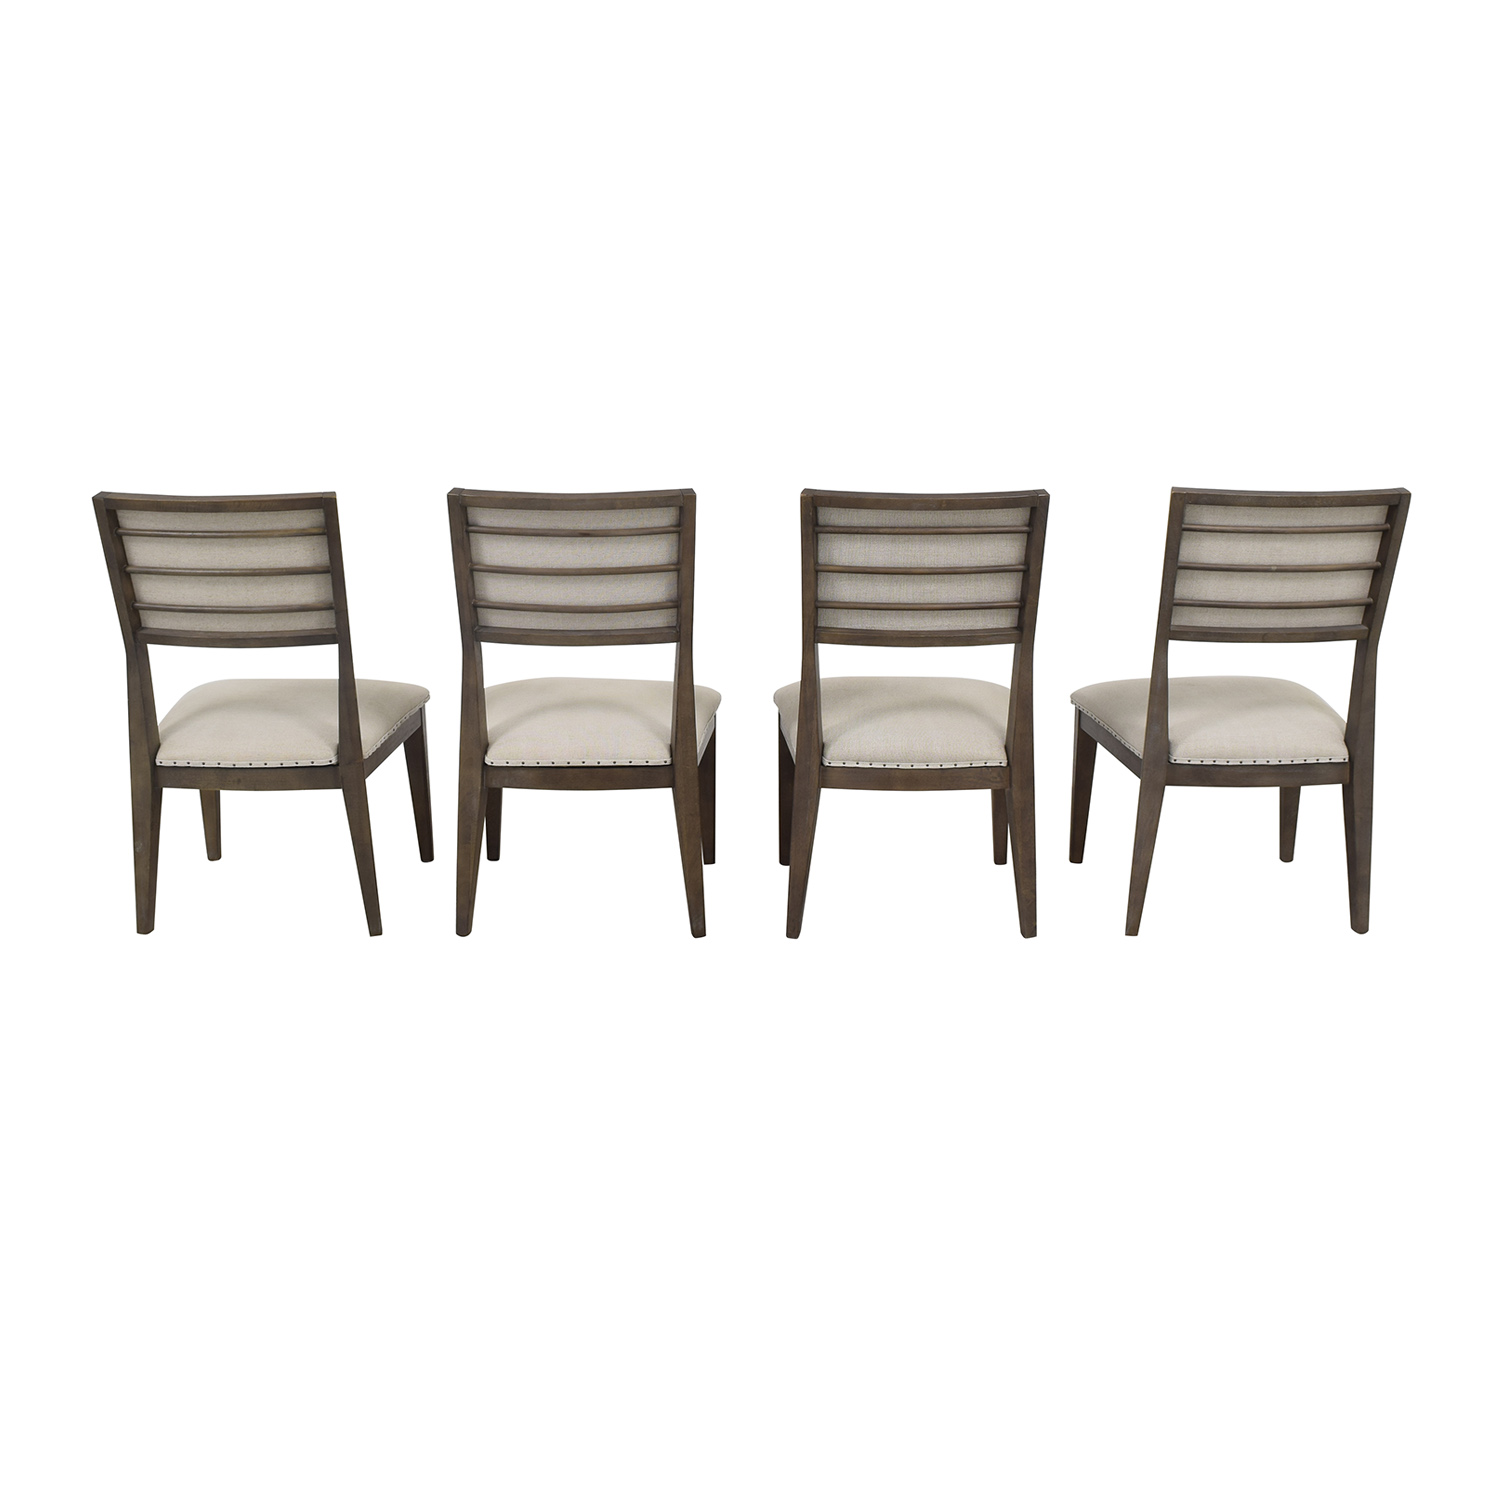 Universal Furniture Universal Furniture Playlist Dining Chairs dimensions